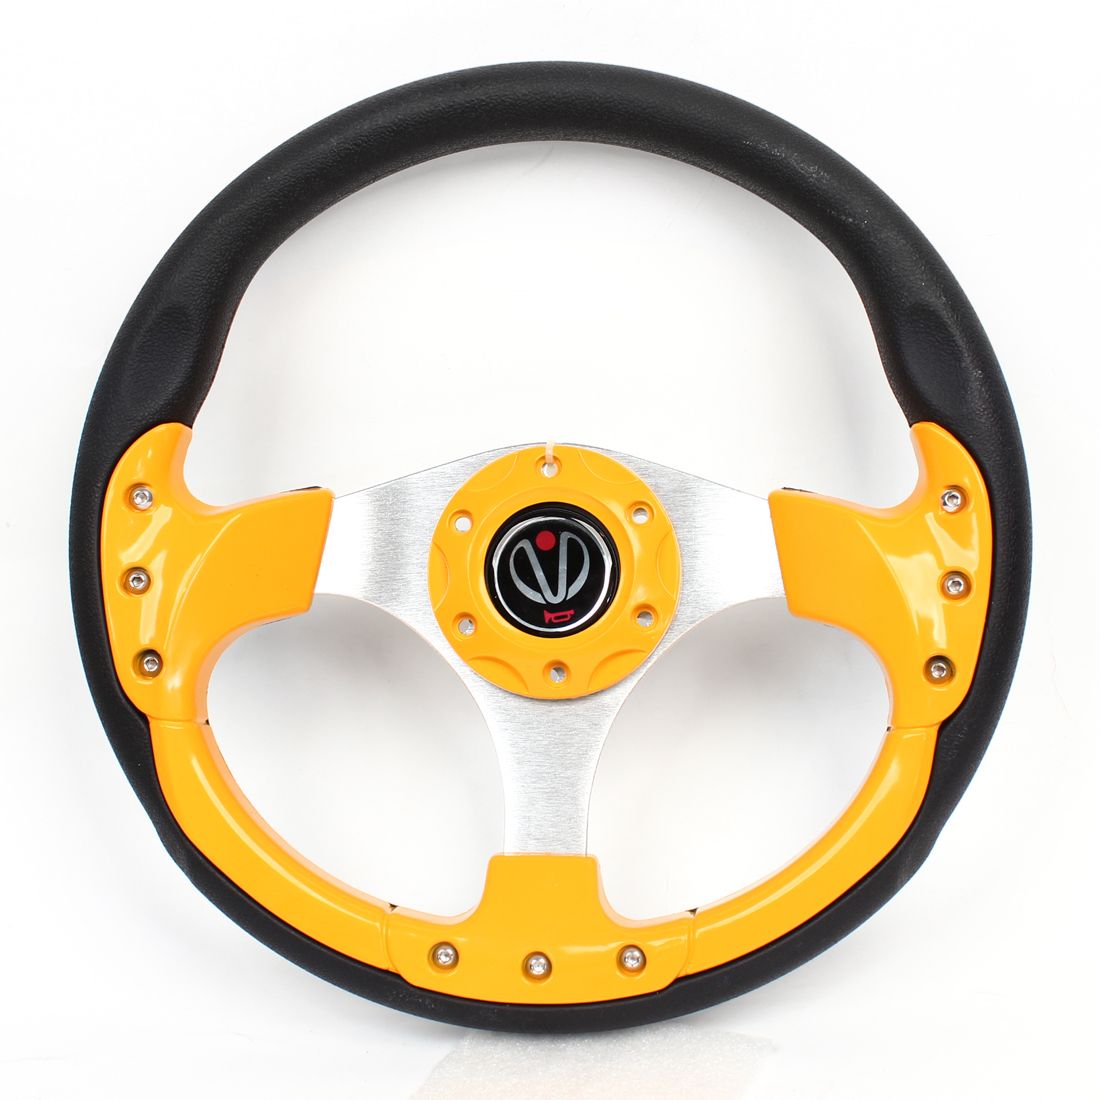 32cm Dia Faux Leather Wrapped Antislip Steering Wheel Yellow Black for Auto